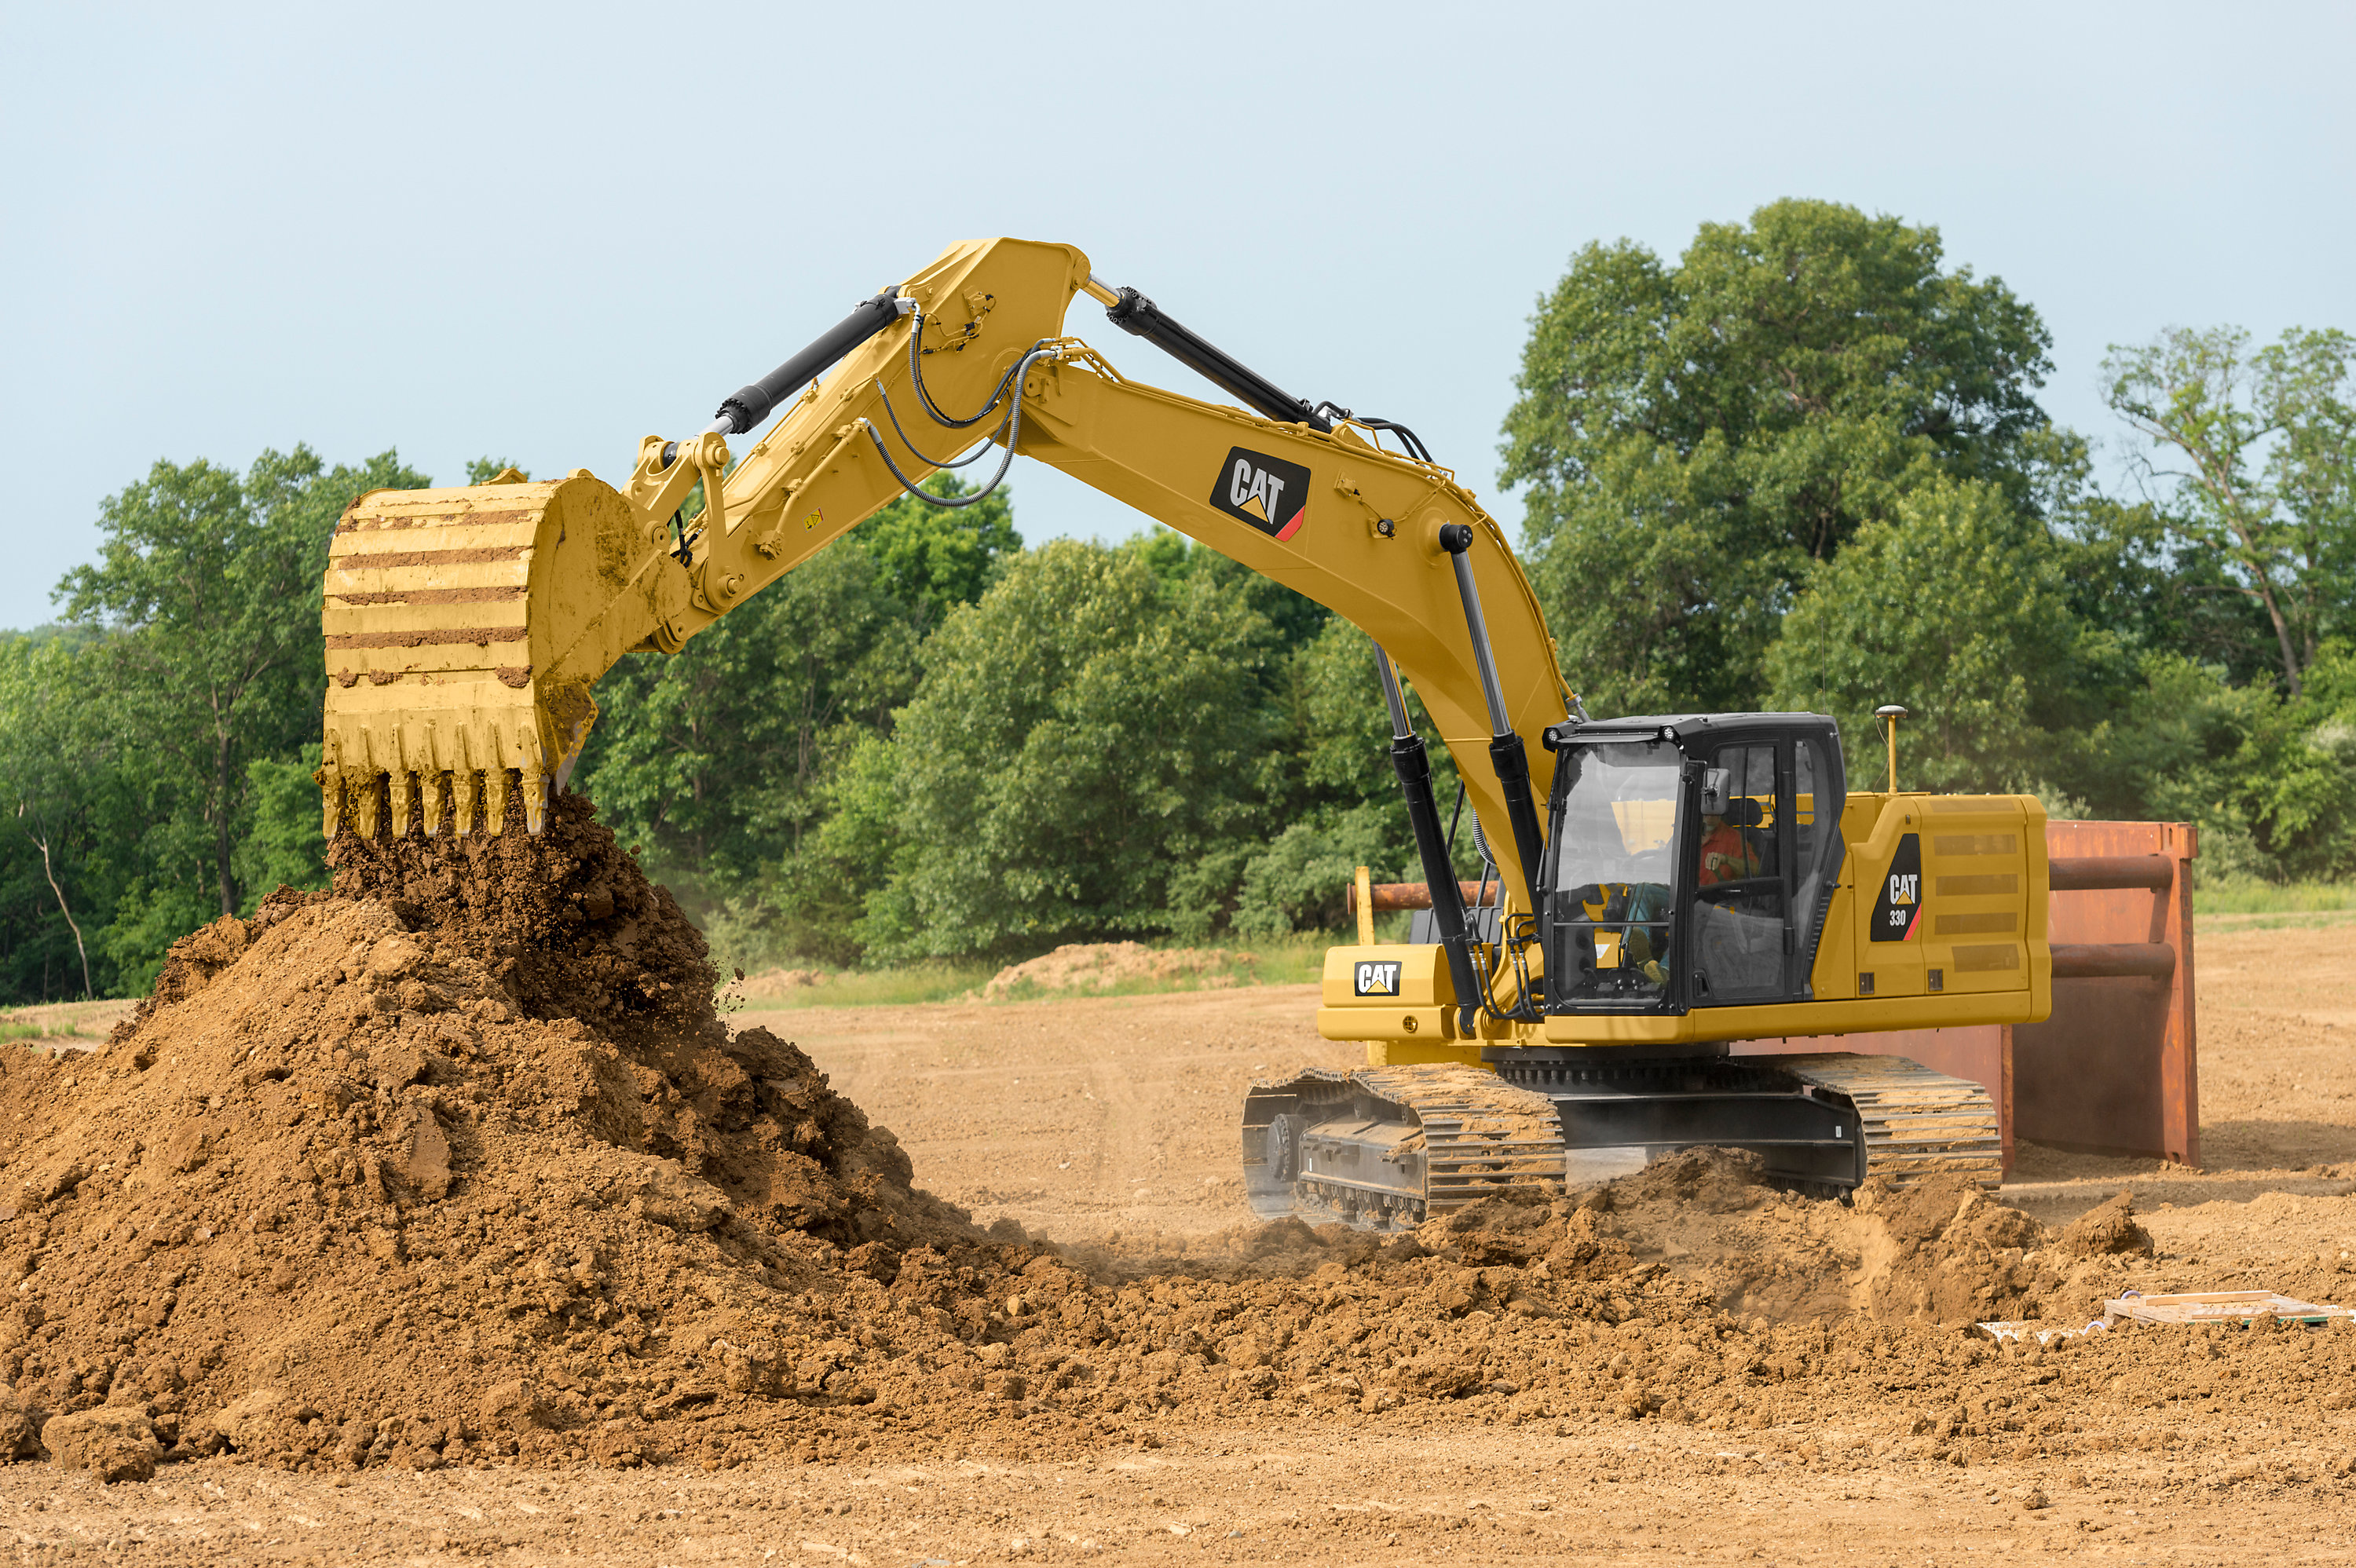 Cat's improved 30-ton excavators lower operating costs